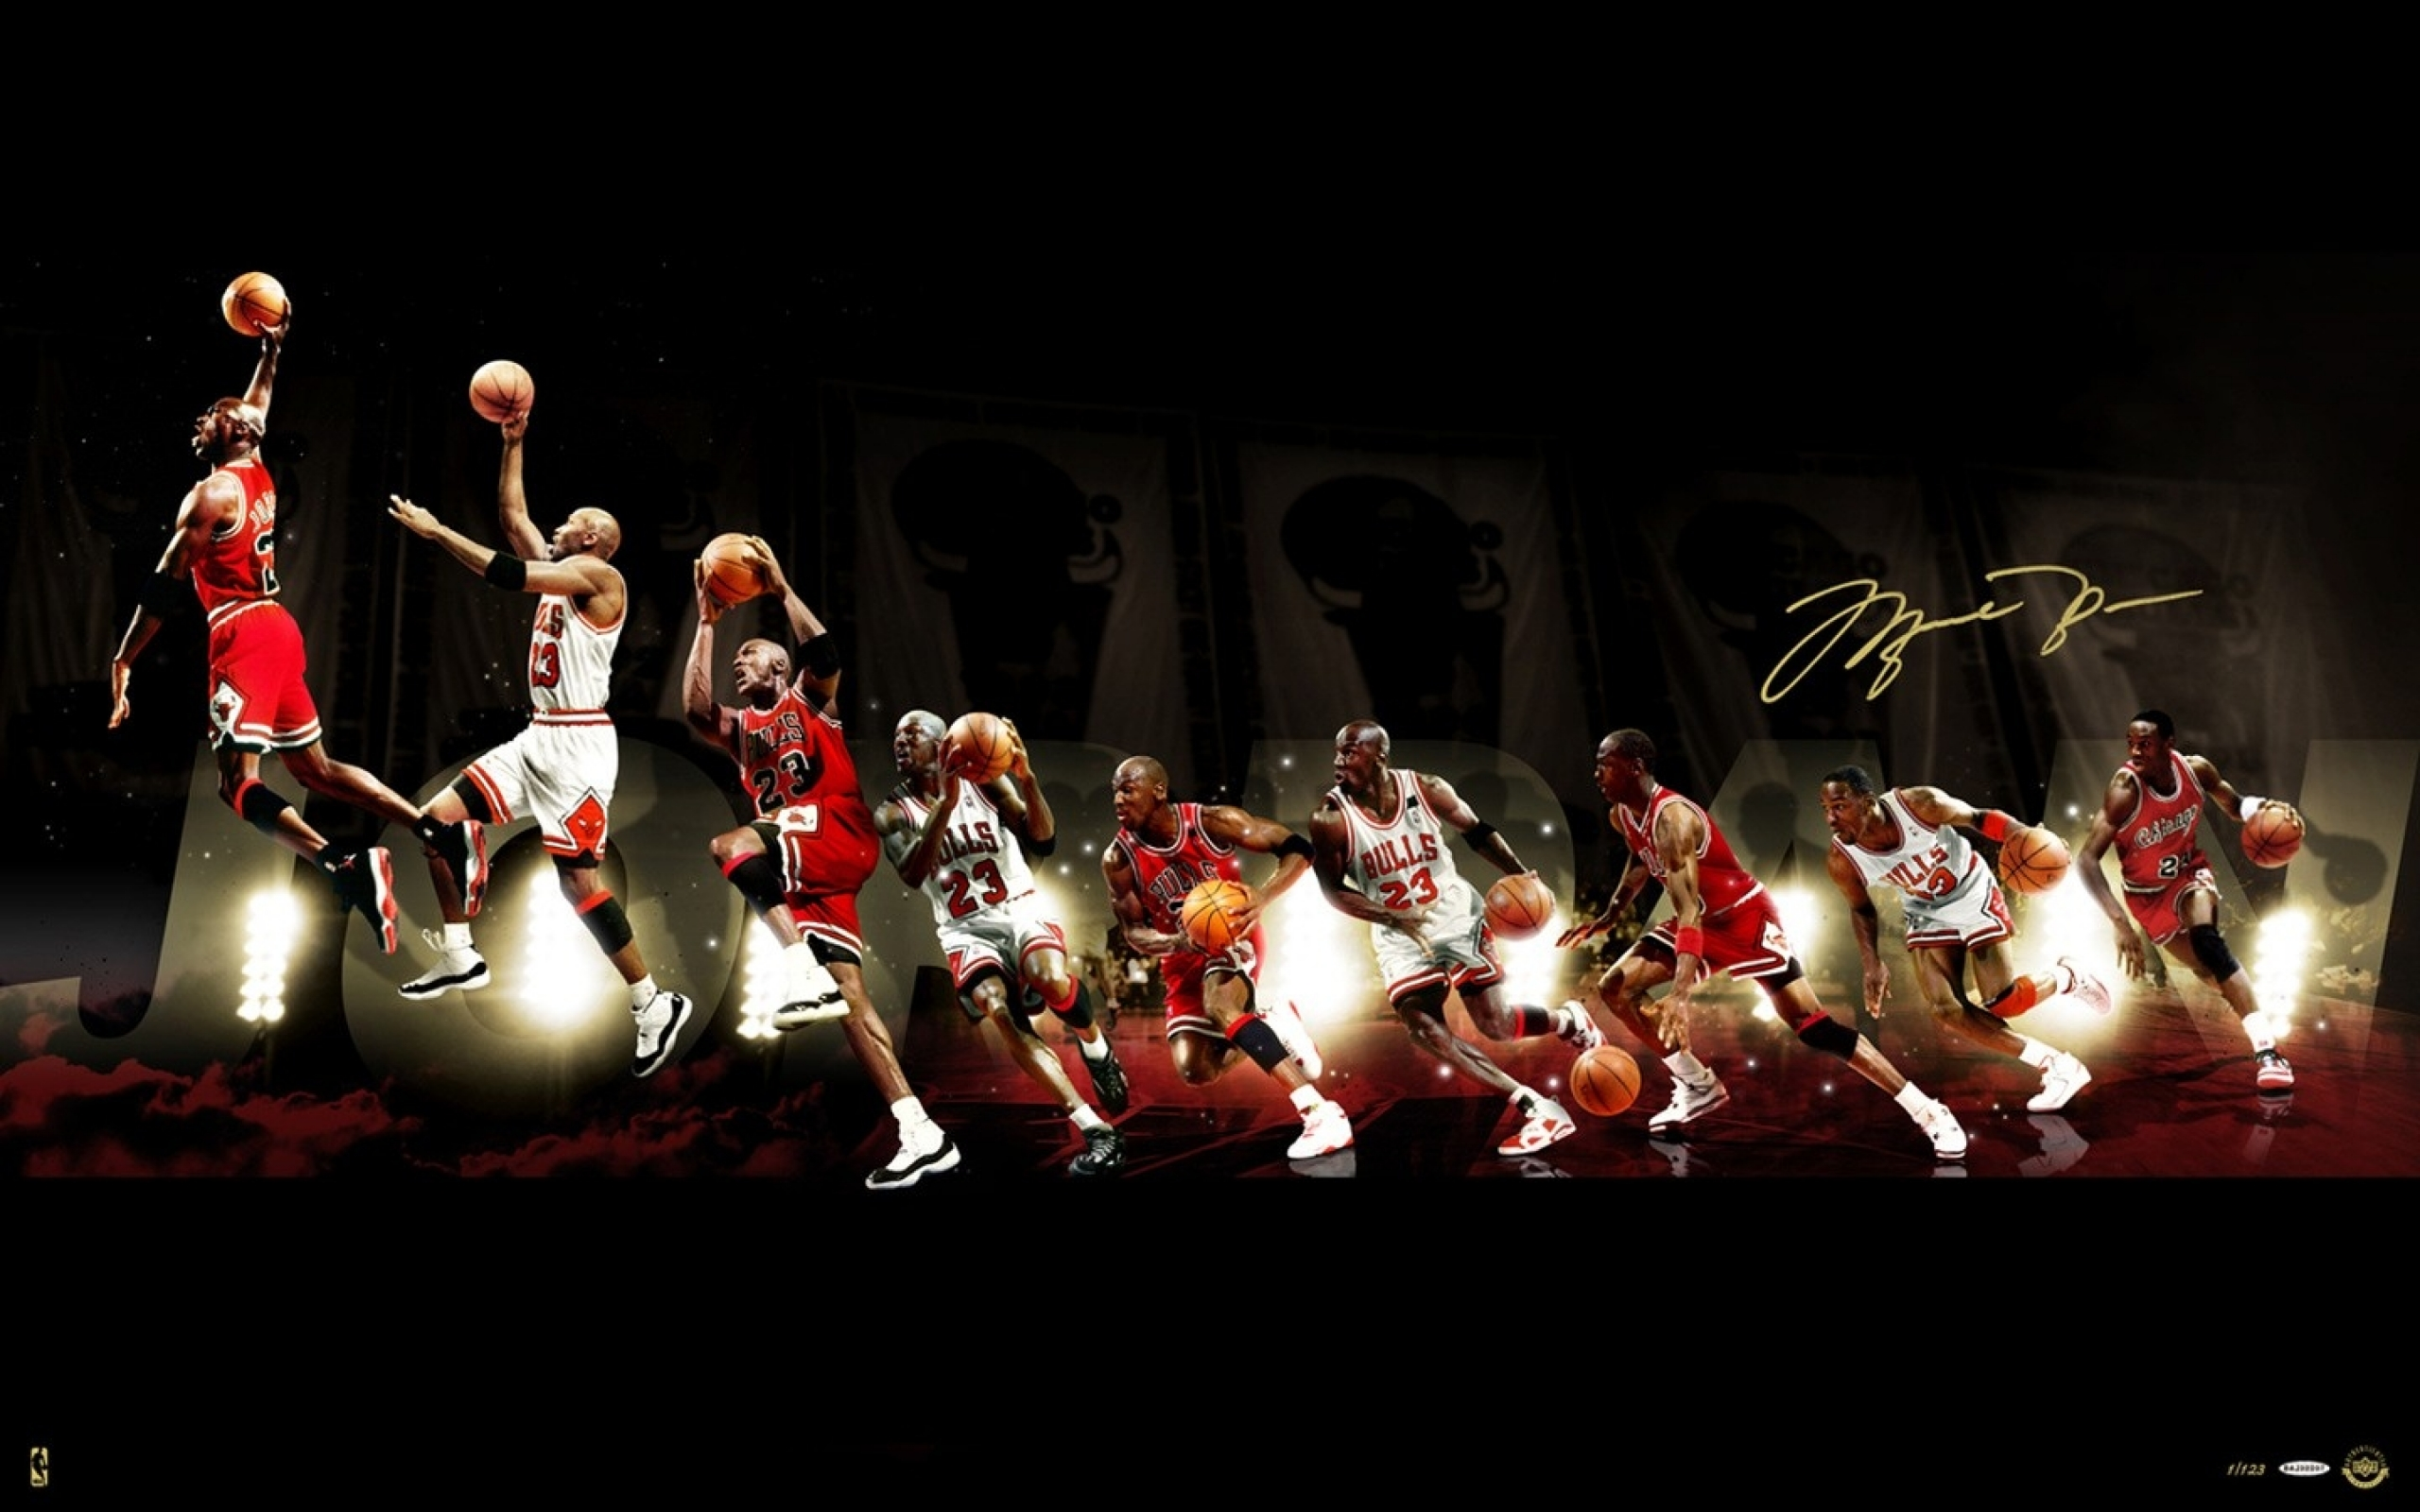 15 Michael Jordan HD Wallpapers | Backgrounds - Wallpaper Abyss